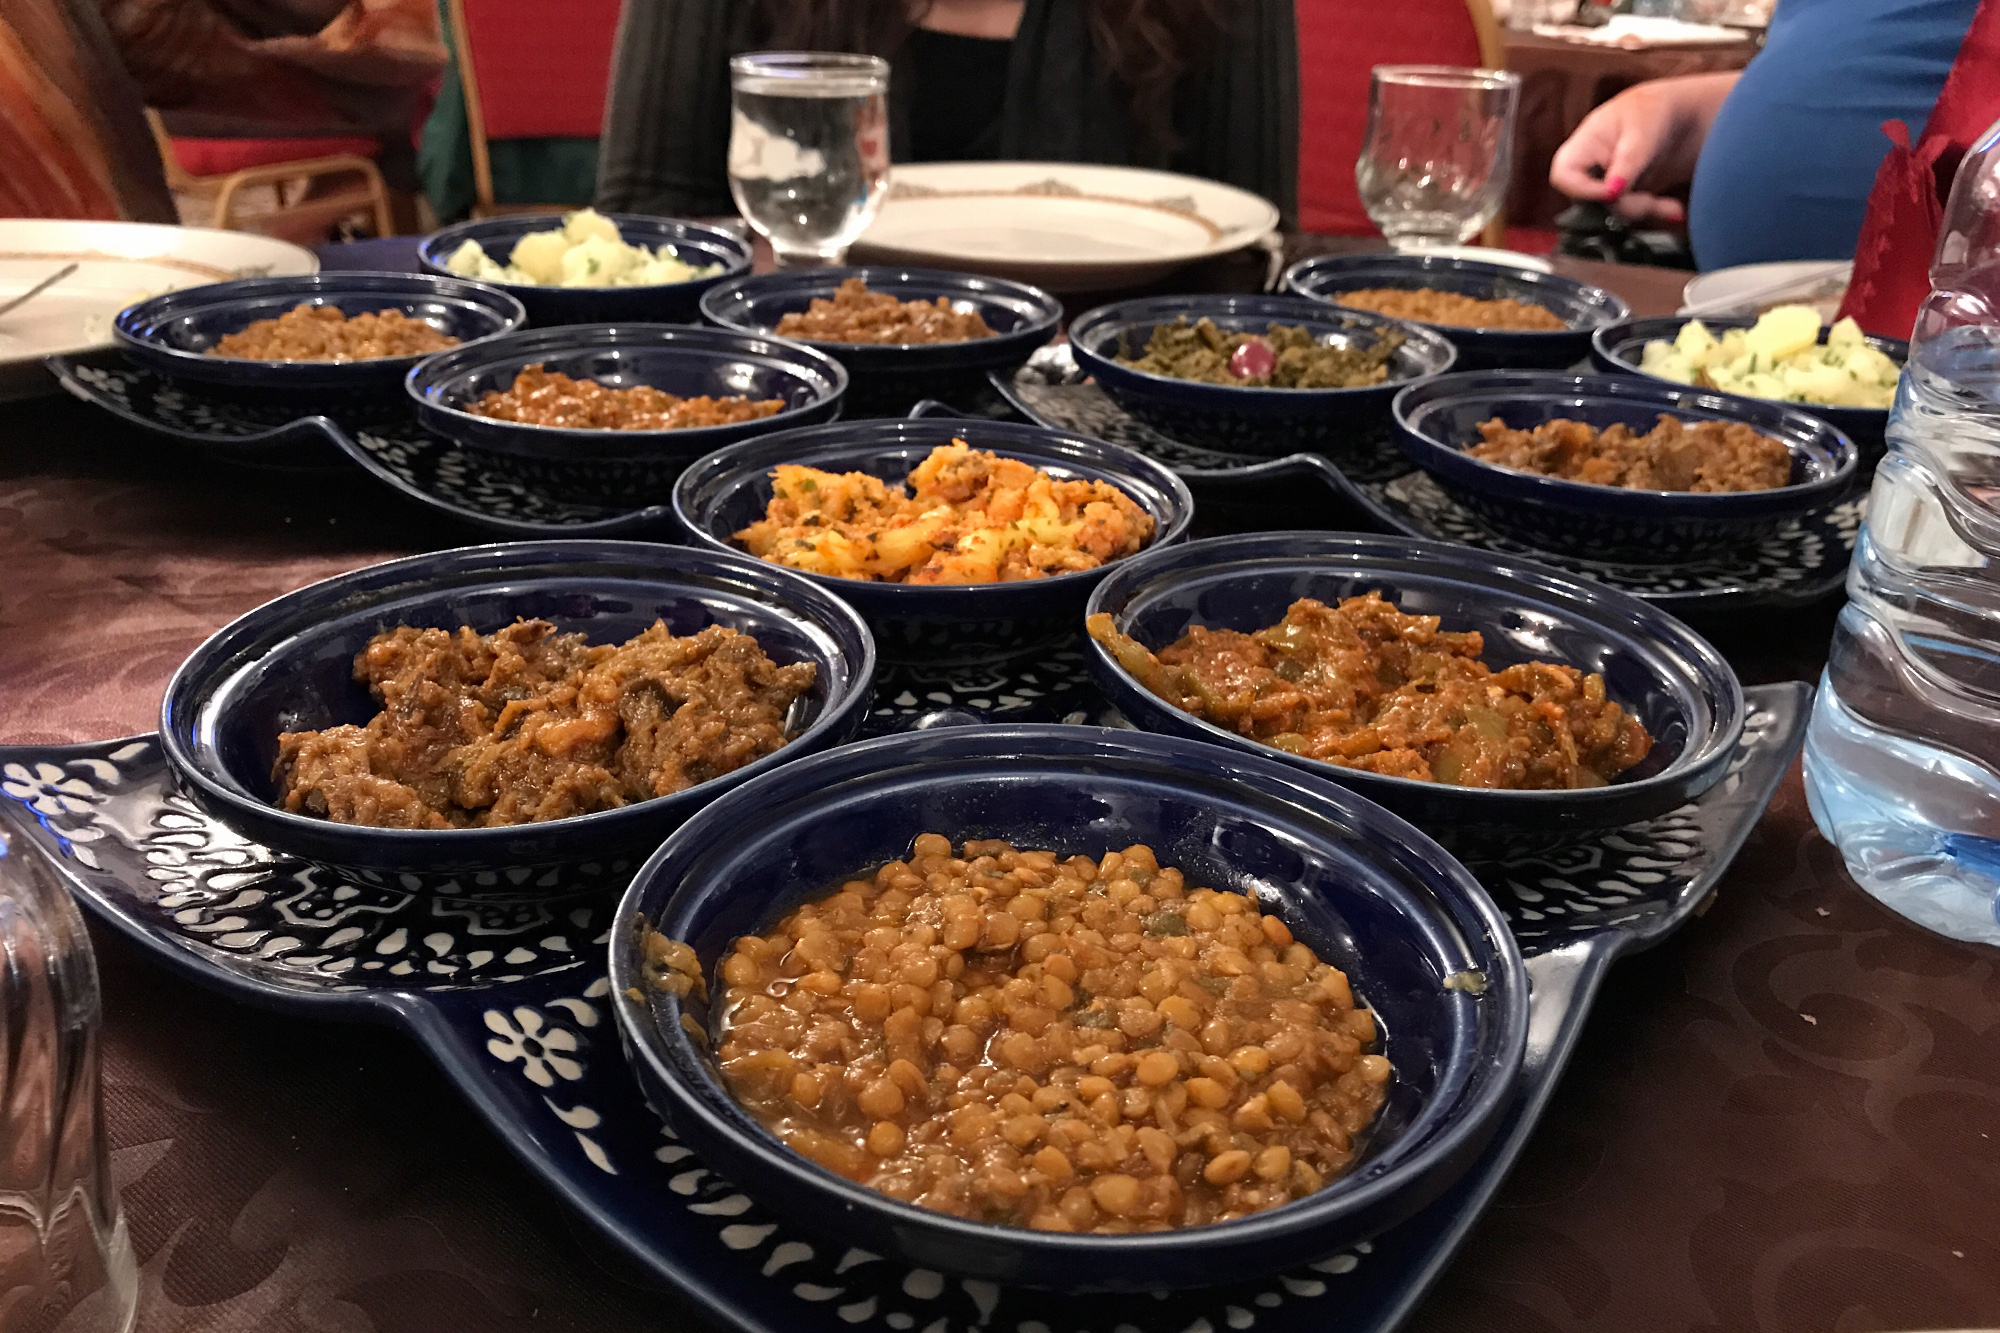 A spread of traditional Moroccan salad dishes